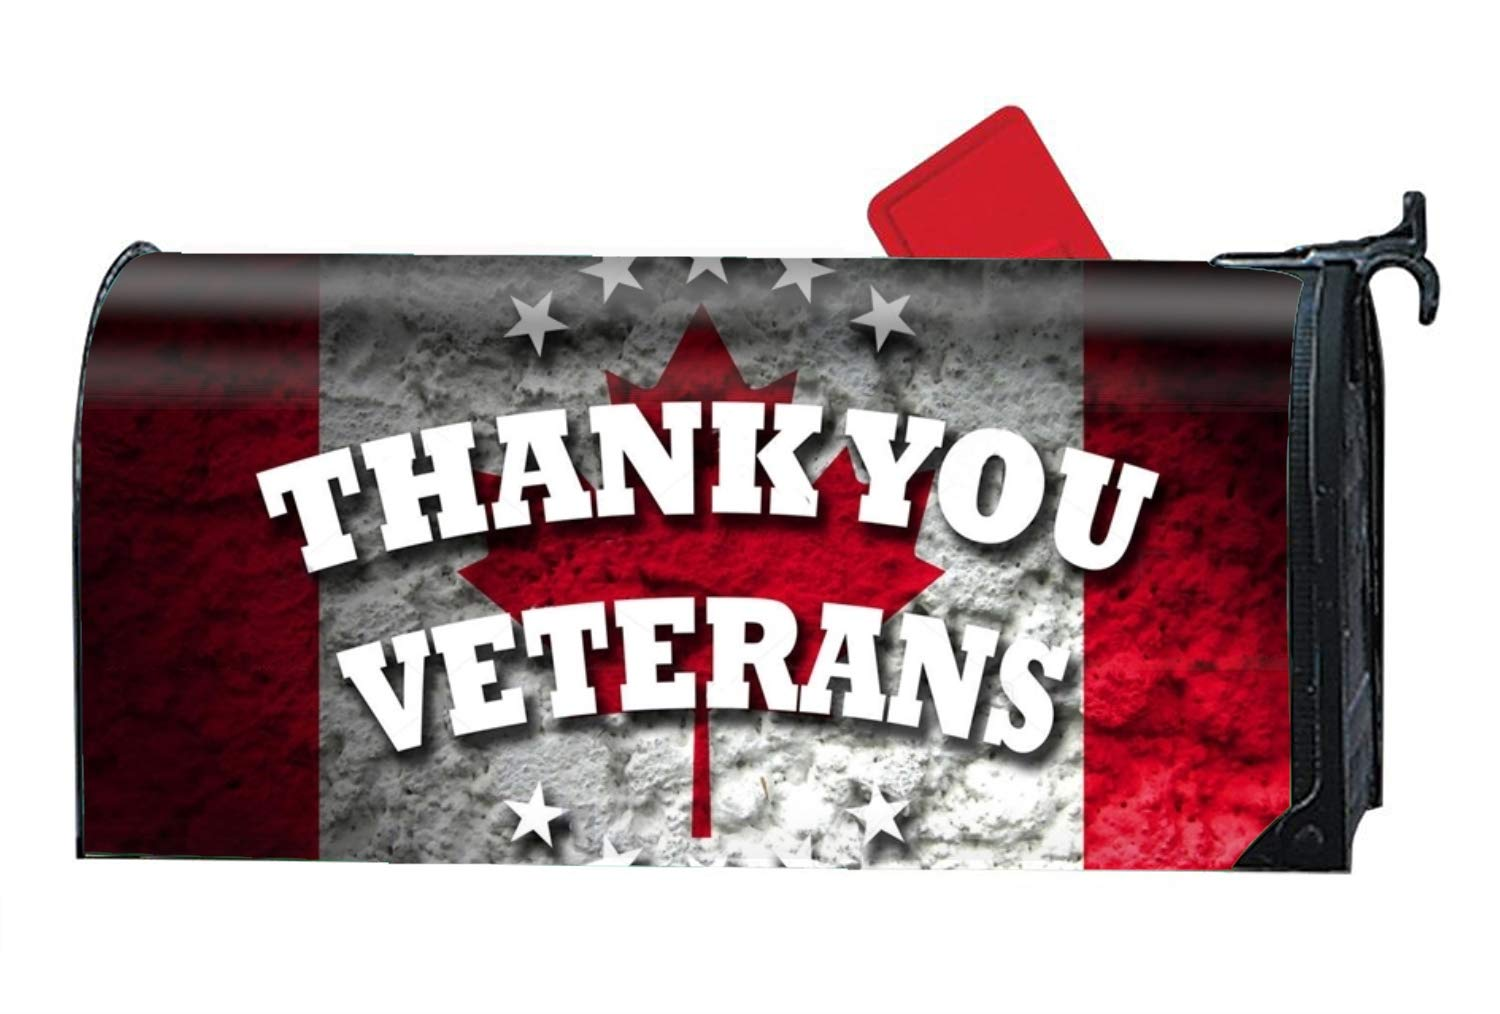 WilBstrn Magnetic Mailbox Cover - Thank You Veterans for Remembrance Day Themed,Decorative Mailbox Wrap for Standard Size